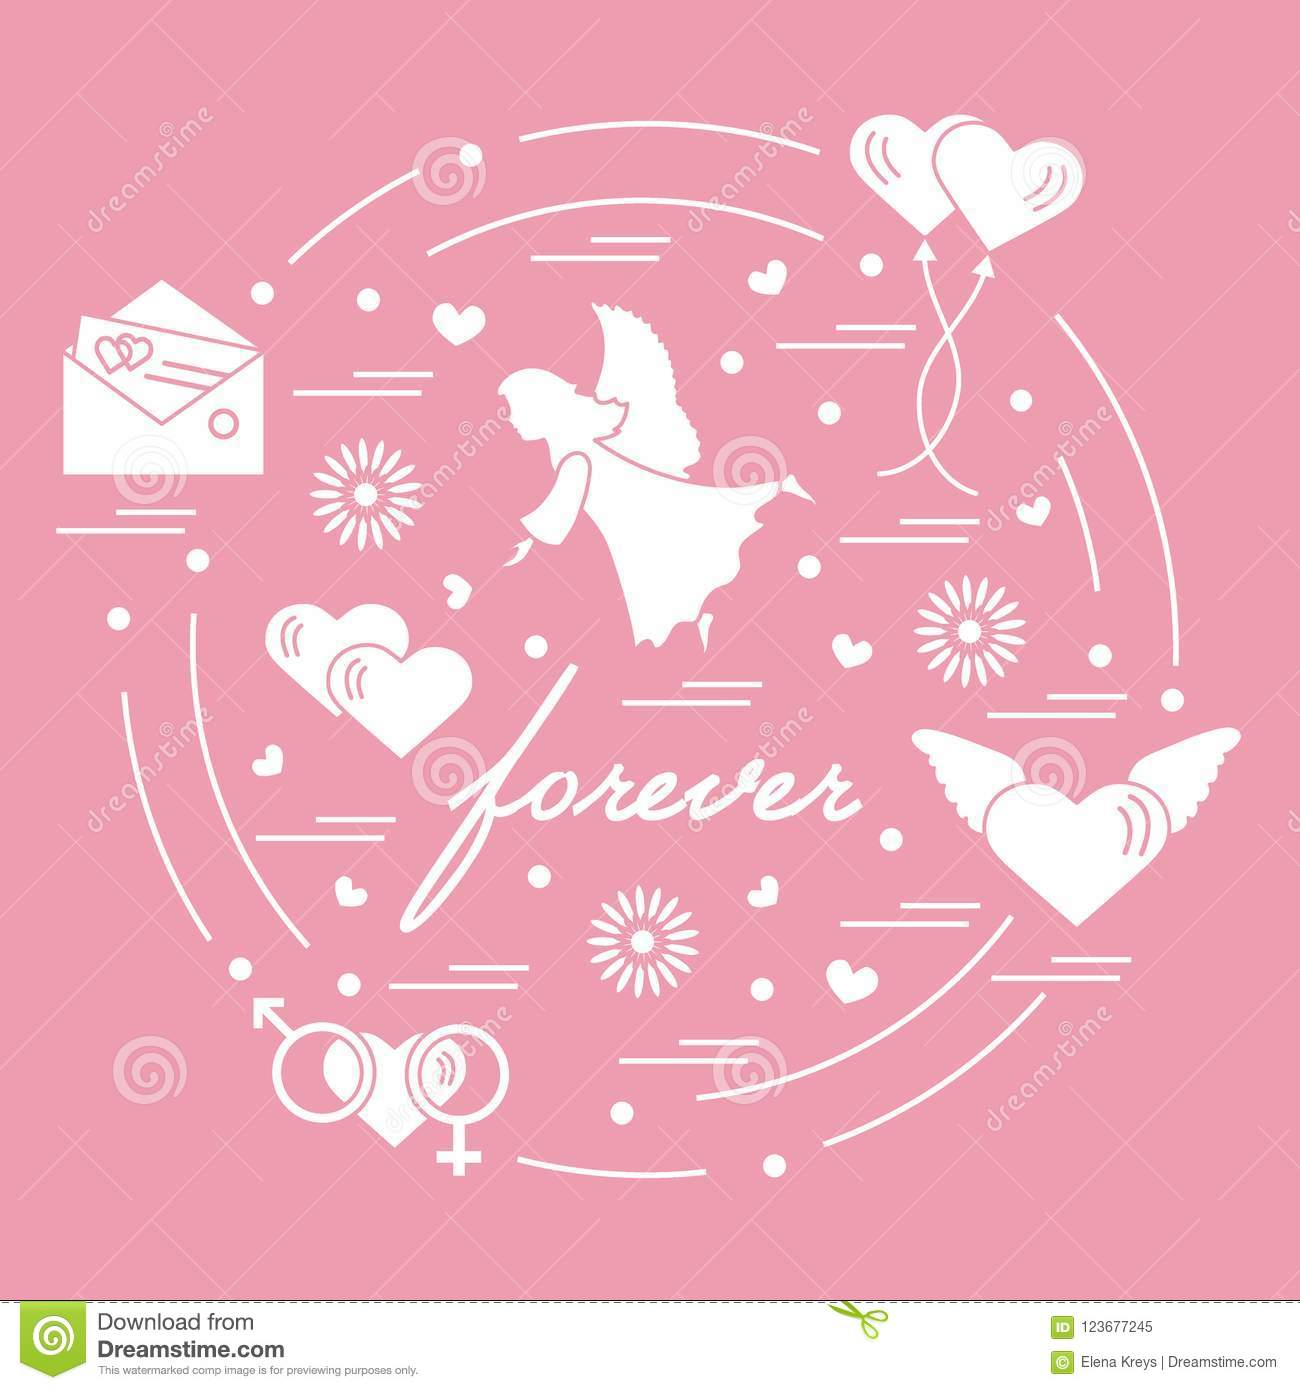 Cute Vector Illustration With Different Love Symbols Hearts Ai